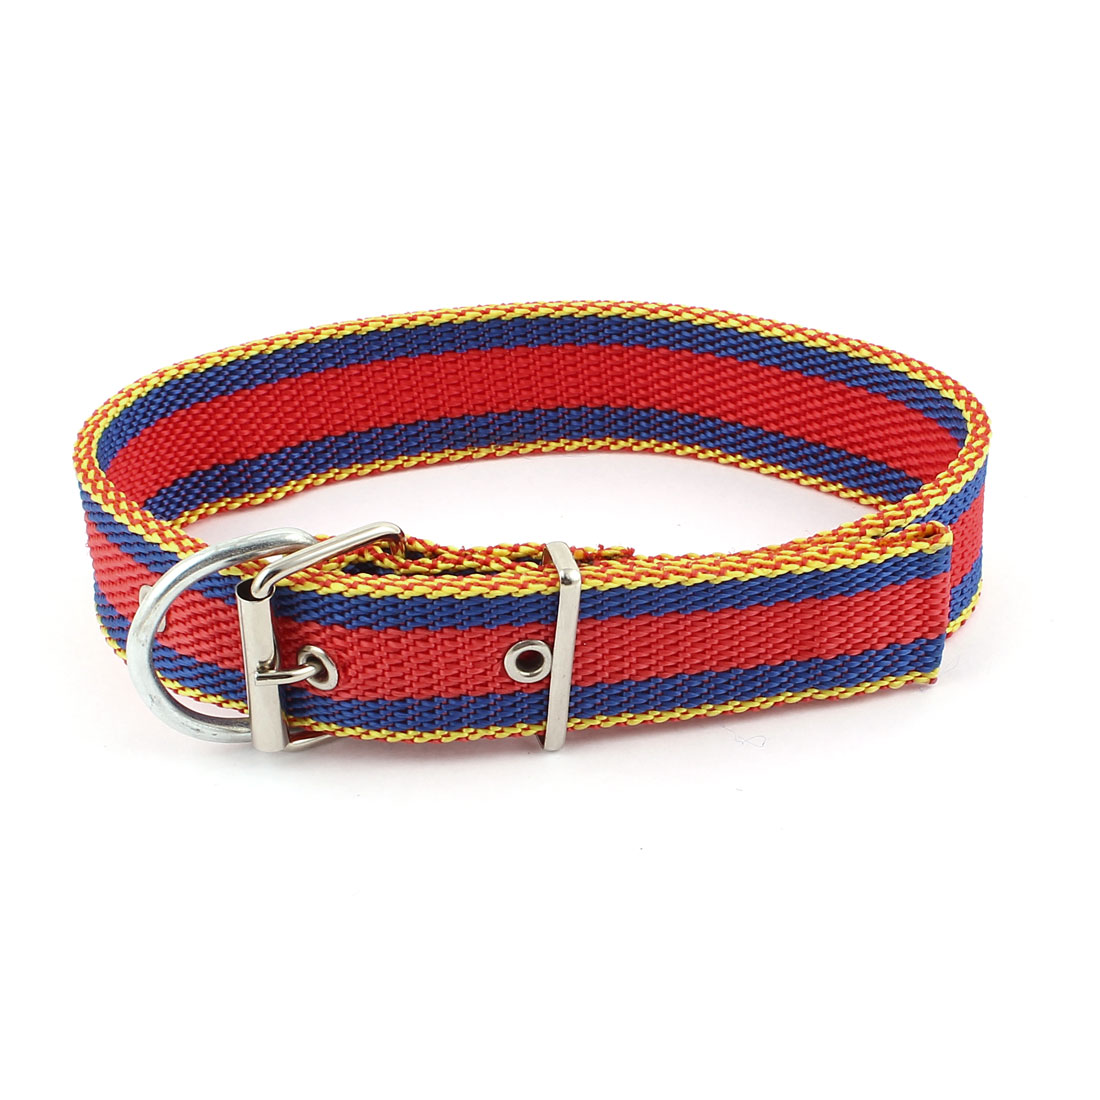 Single Pin Buckle Adjustable Belt Pet Dog Doggy Collar Necklace Red Blue